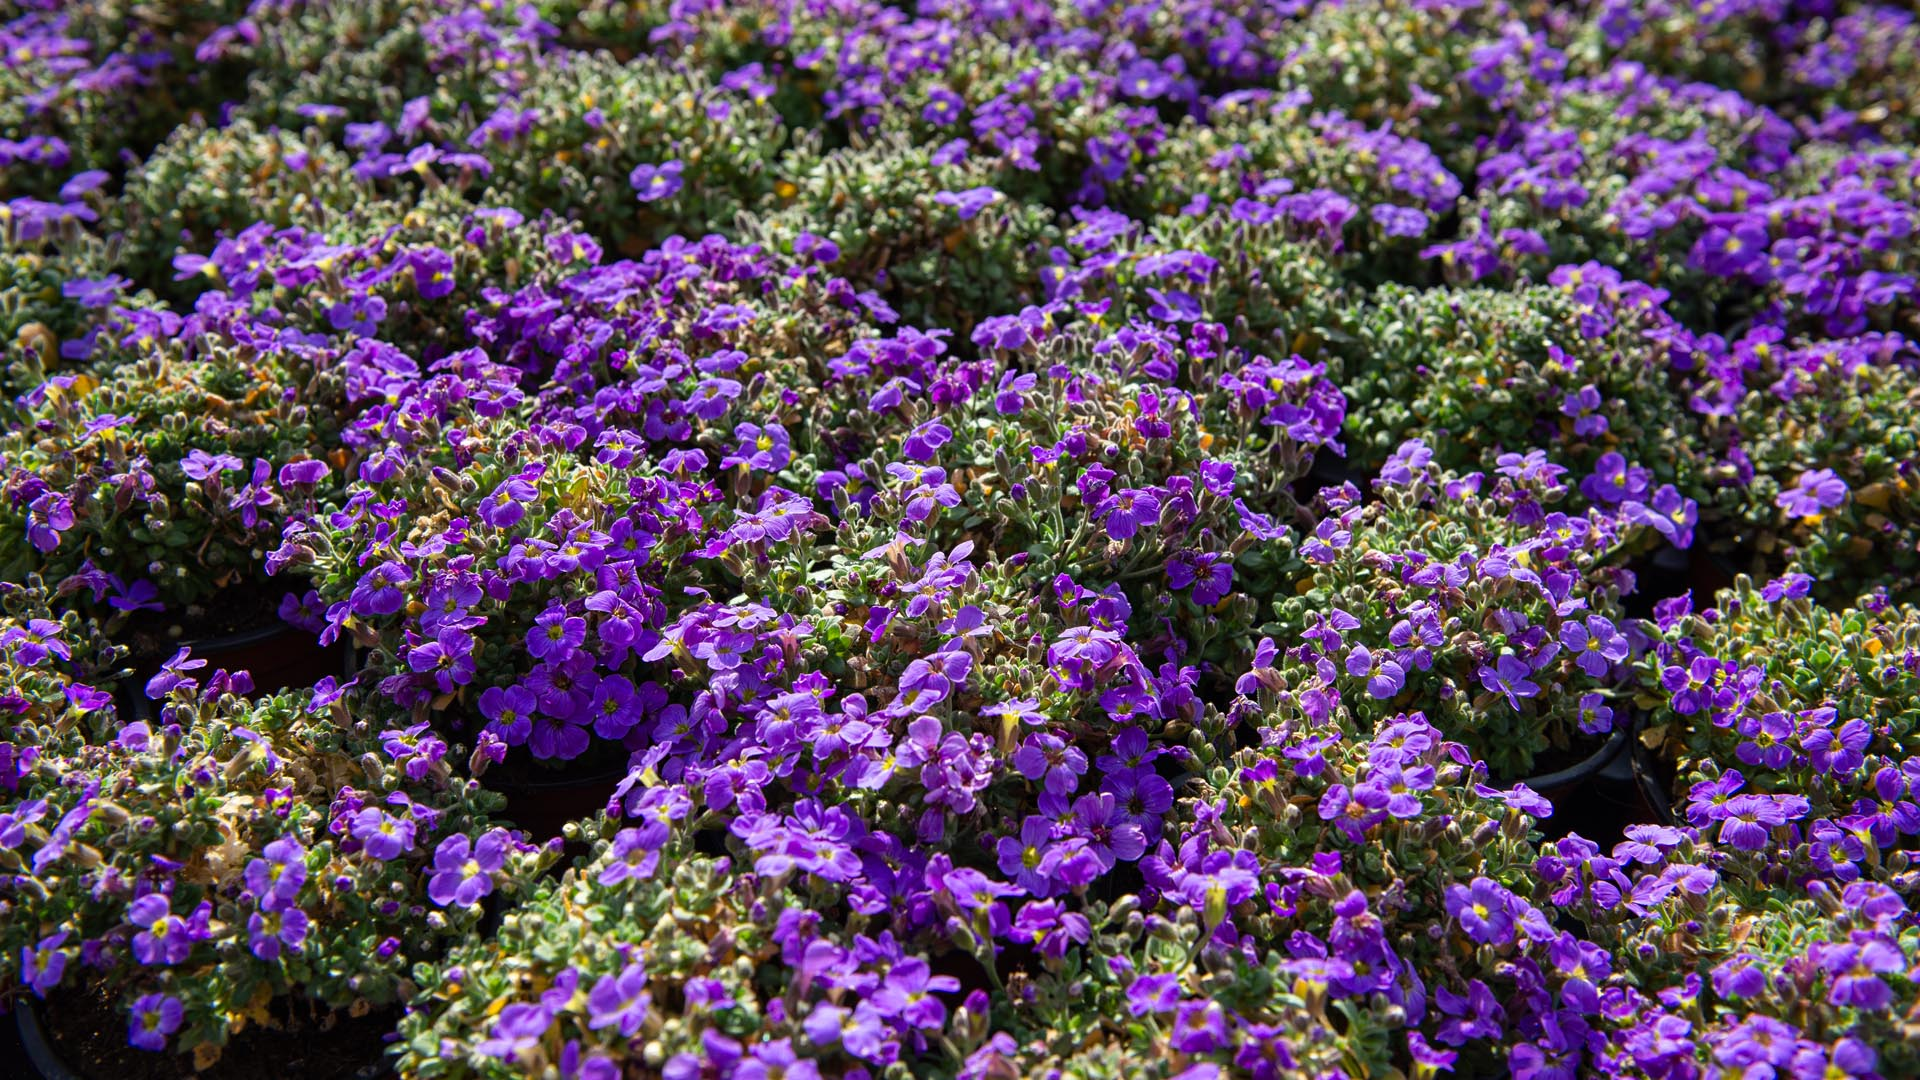 024_039_AUBRIETA 'Audrey Light Blue'_0873_vag.jpg